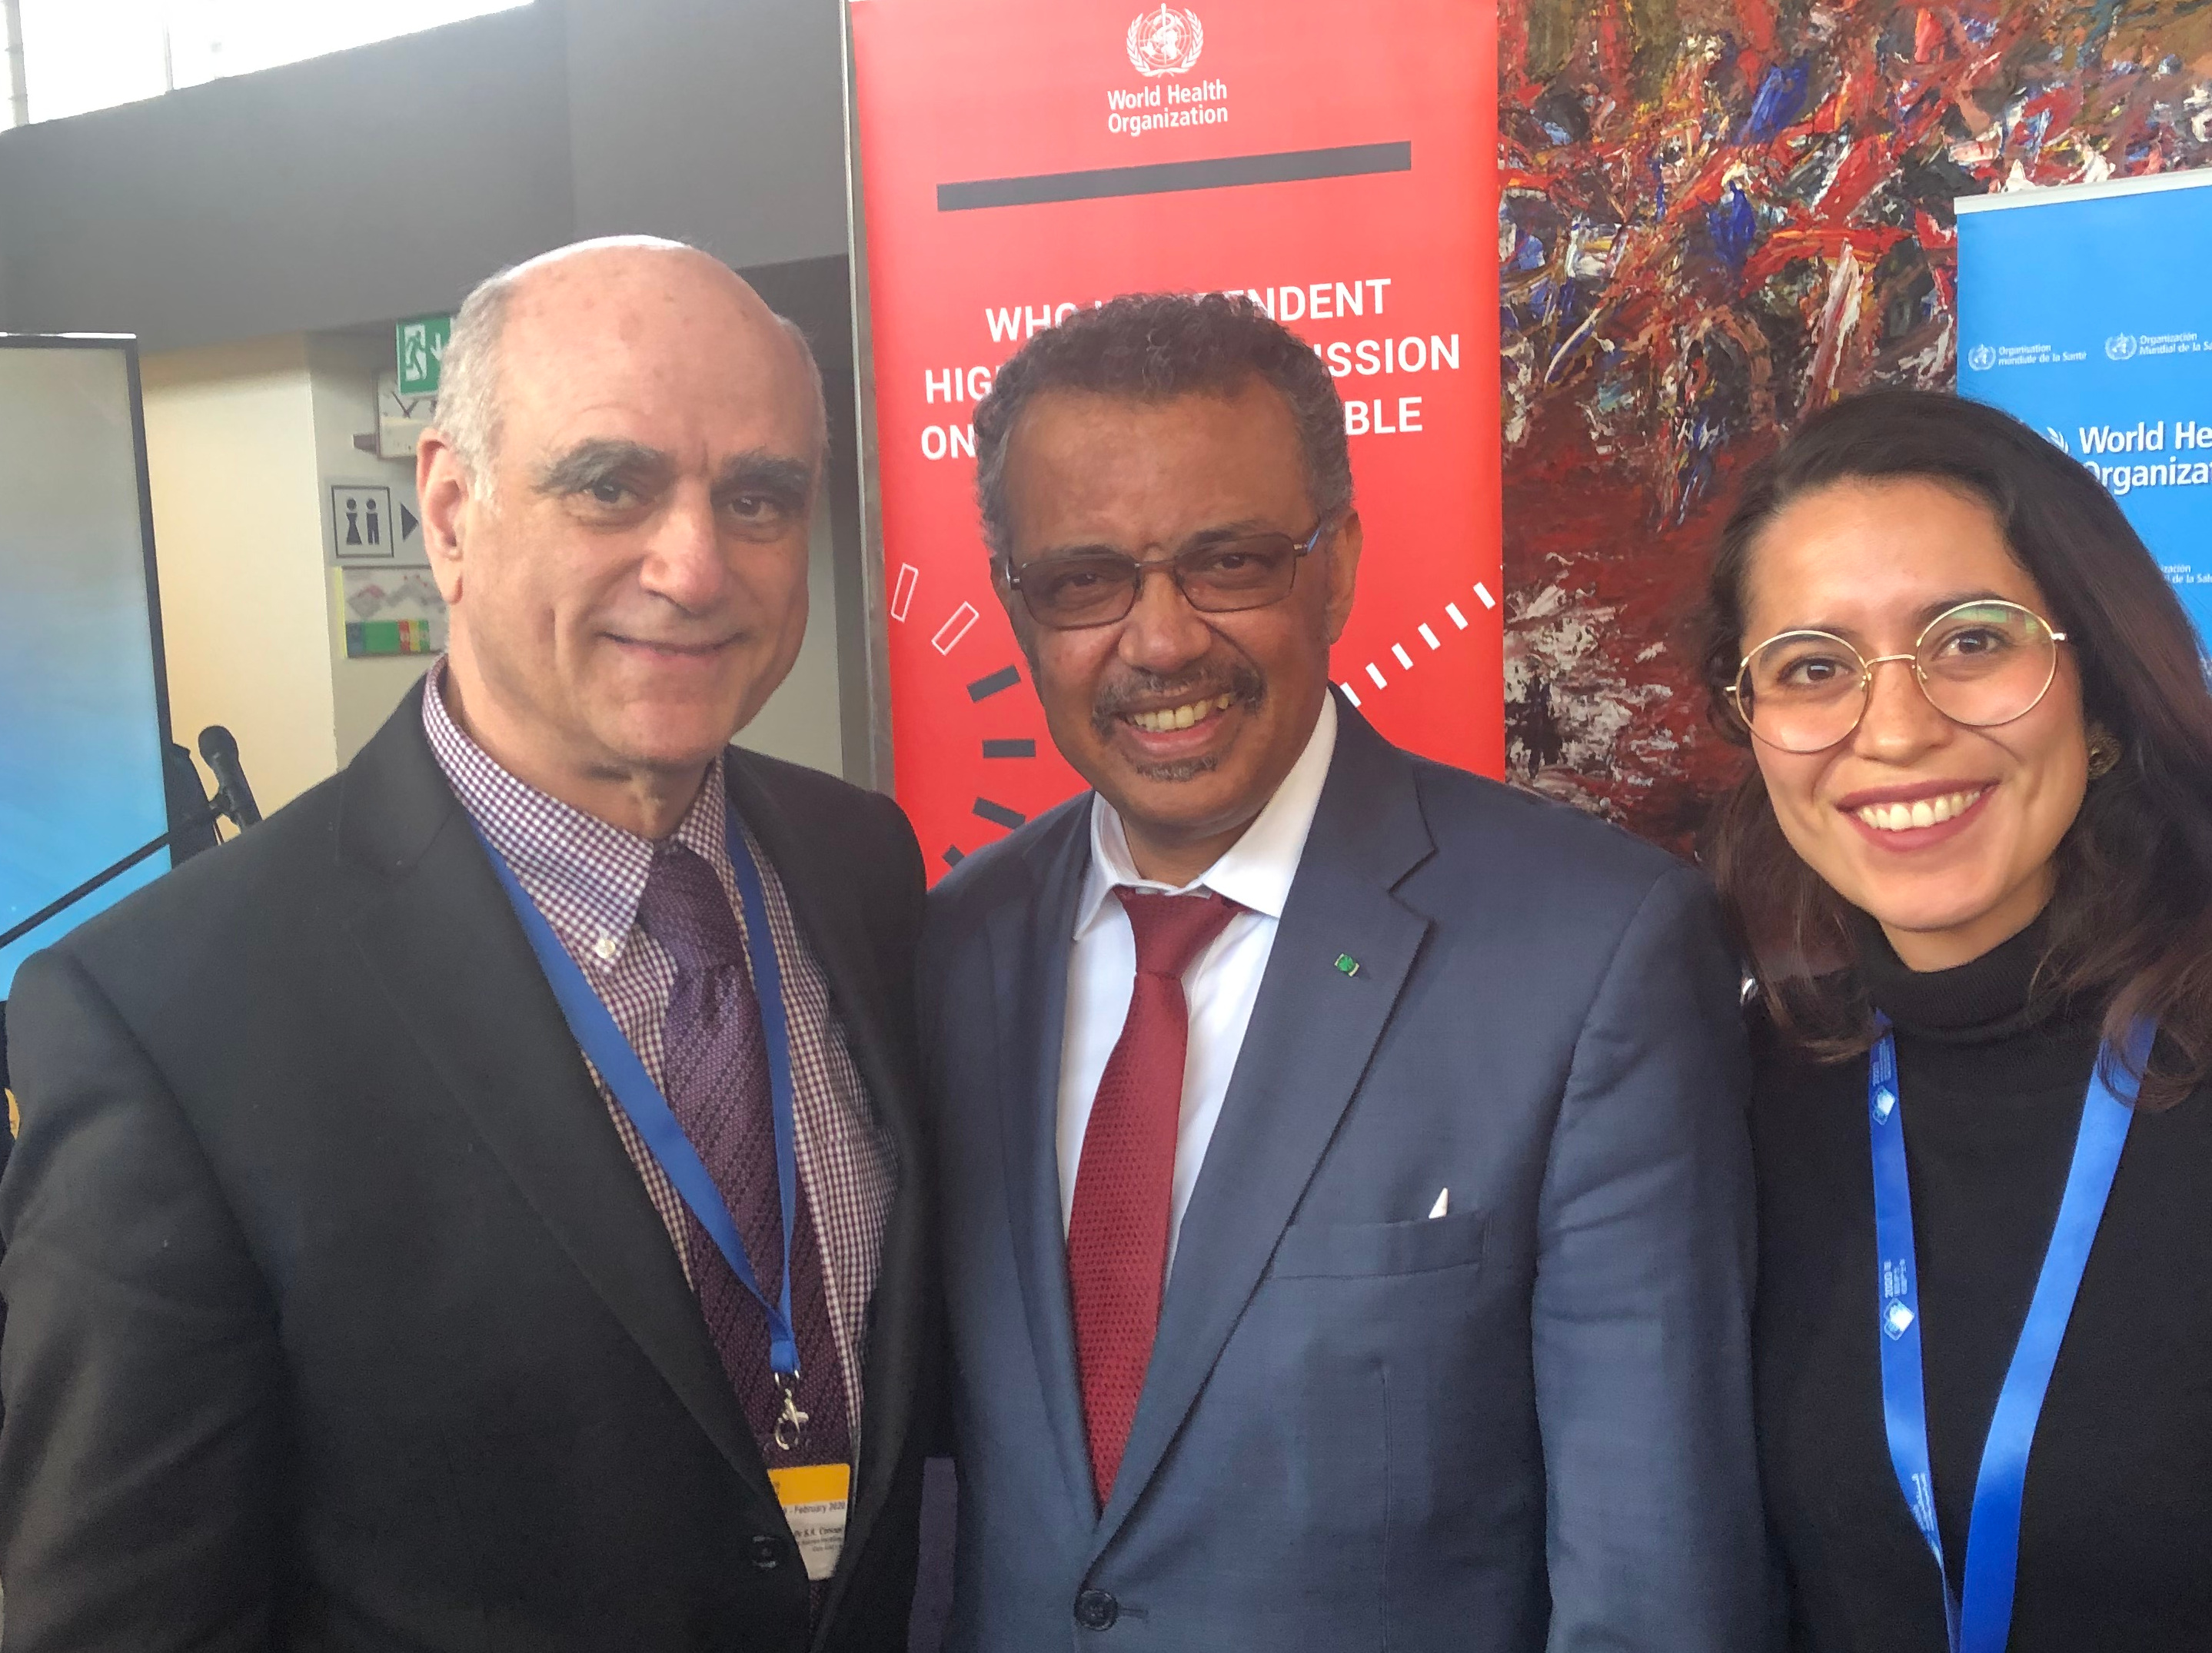 """Advocates highlight palliative care as """"essential component"""" of healthcare at WHO Executive Board meeting"""